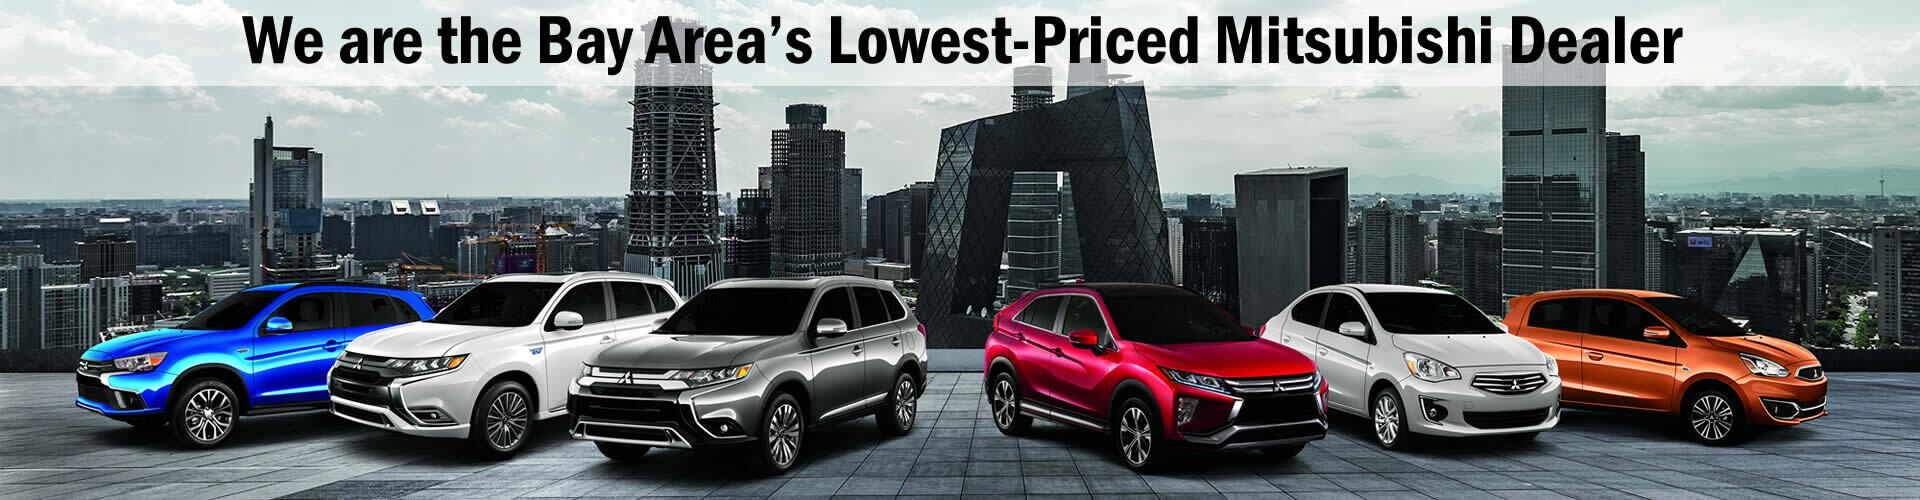 Lowest-Price Mitsubishi Dealer